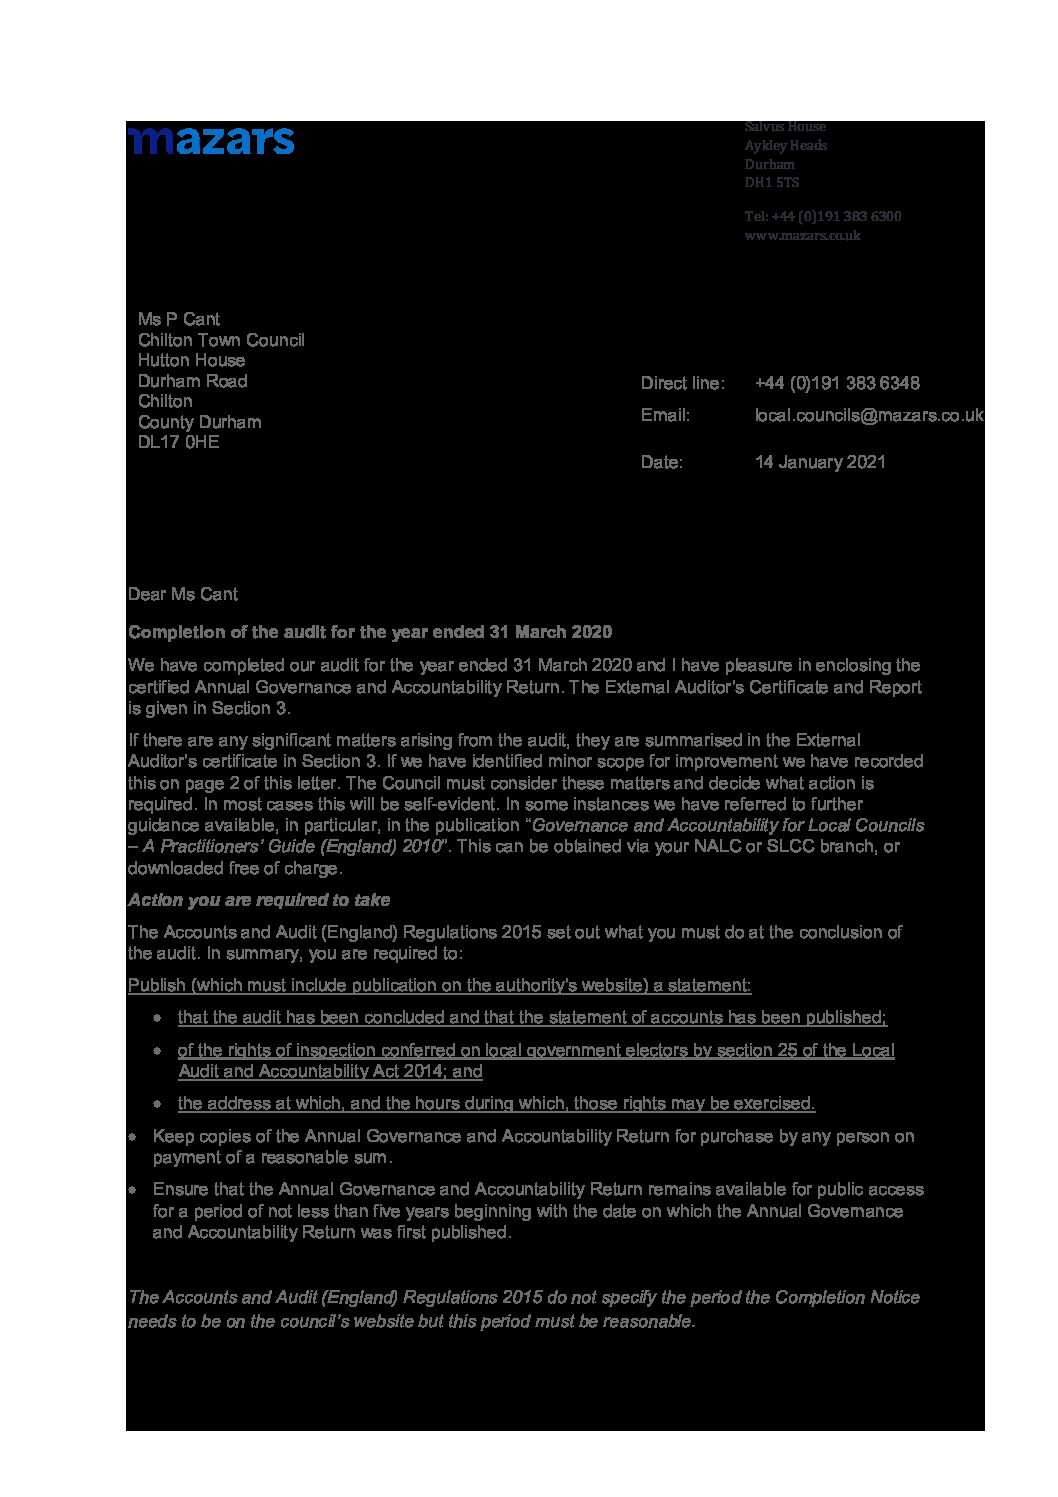 Letter from Mazars re Completion of the audit for accounts for year ending 31st March 2020